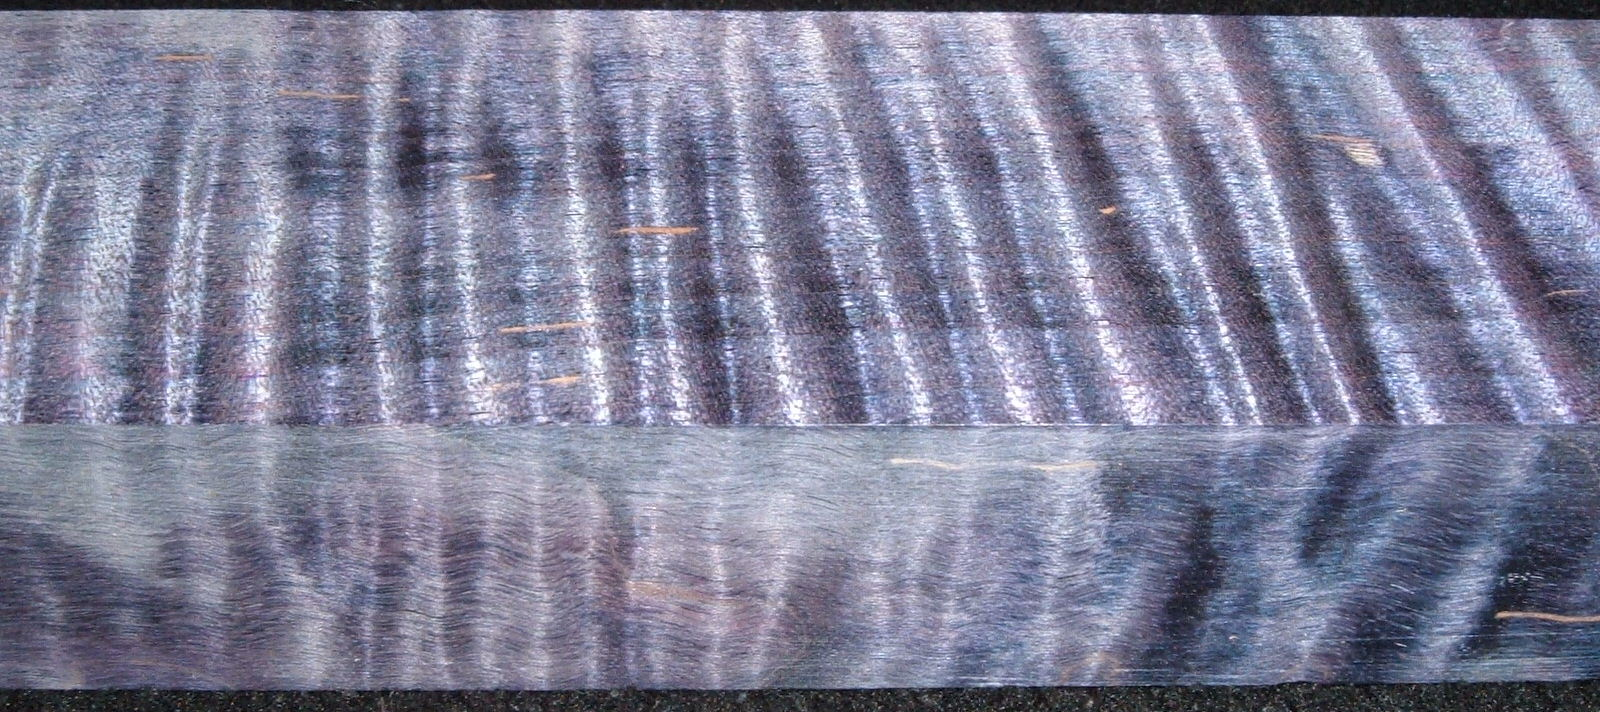 Z409, Curly Tiger Maple Dyed Stabilized, wood block scales/handle, Purple, 1-1/16x1-3/4x6